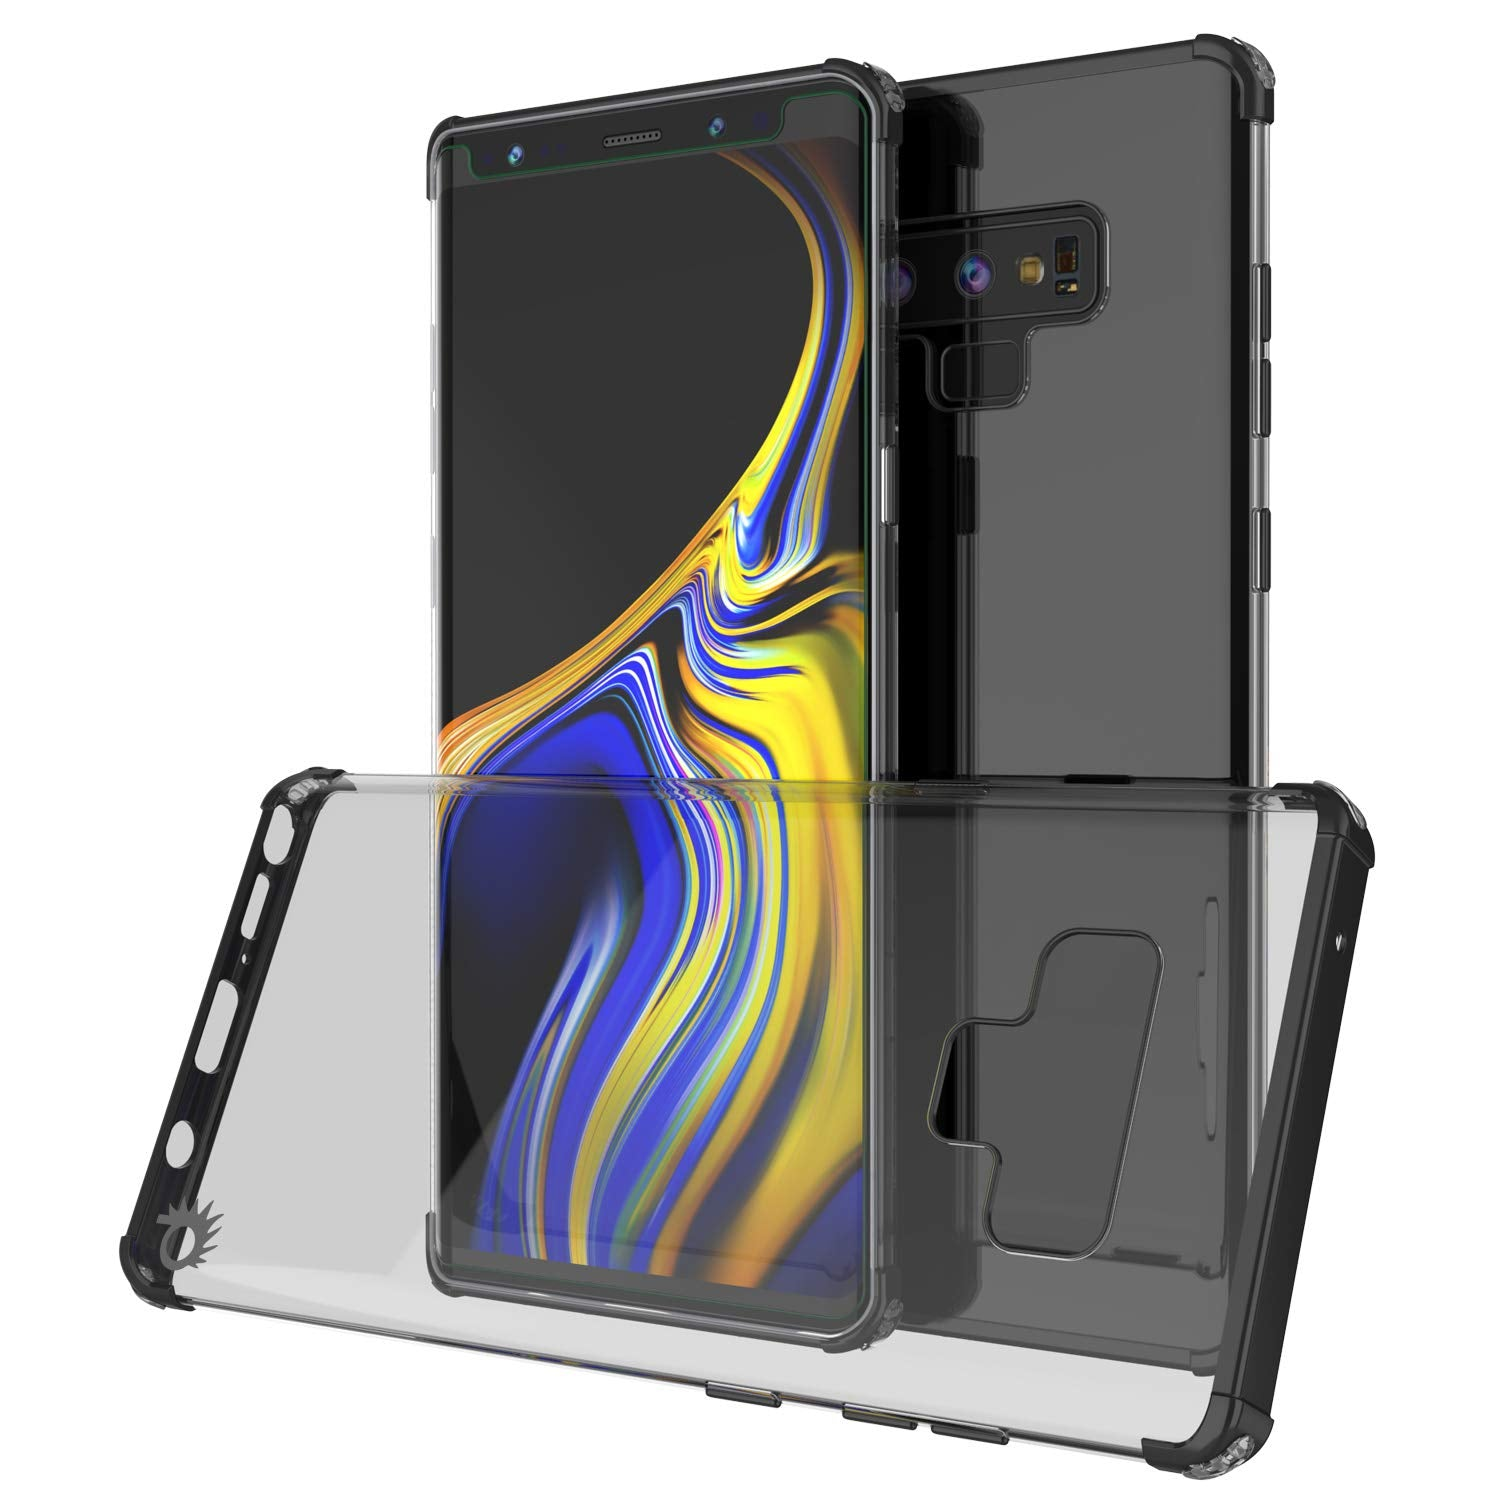 Galaxy Note 9 Blaze Series Shockproof Slim Case W/PunkShield Screen Protector [Black]